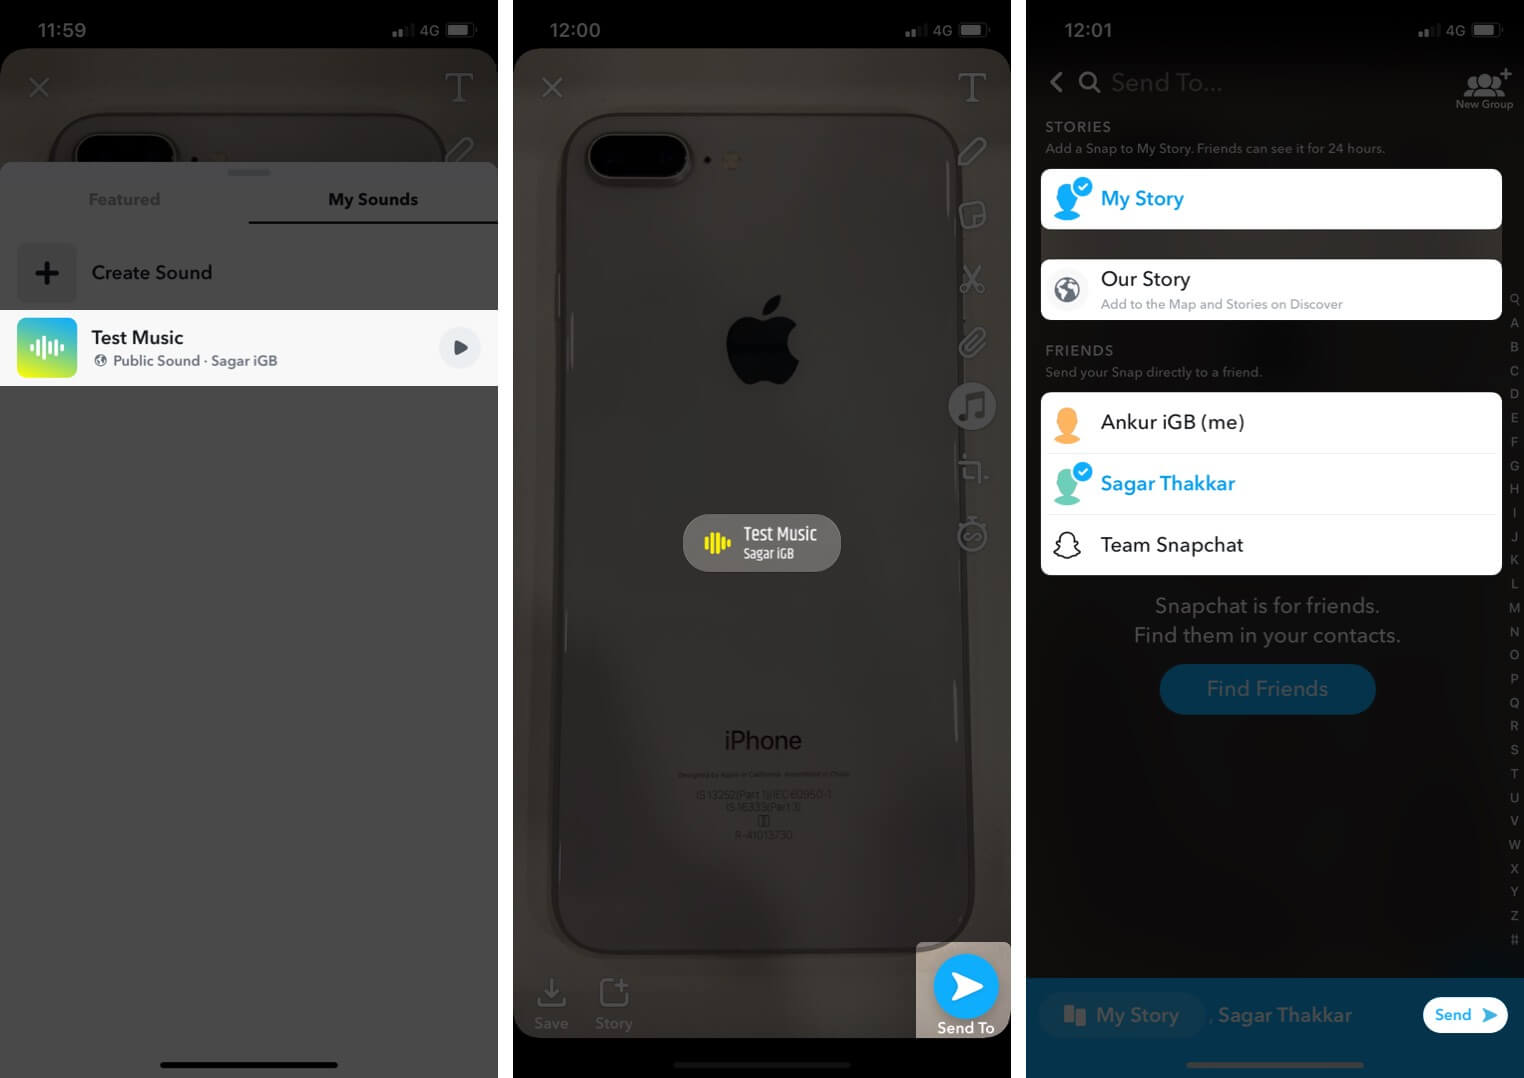 Select Created Sound and Tap on Send to Share it on Snapchat